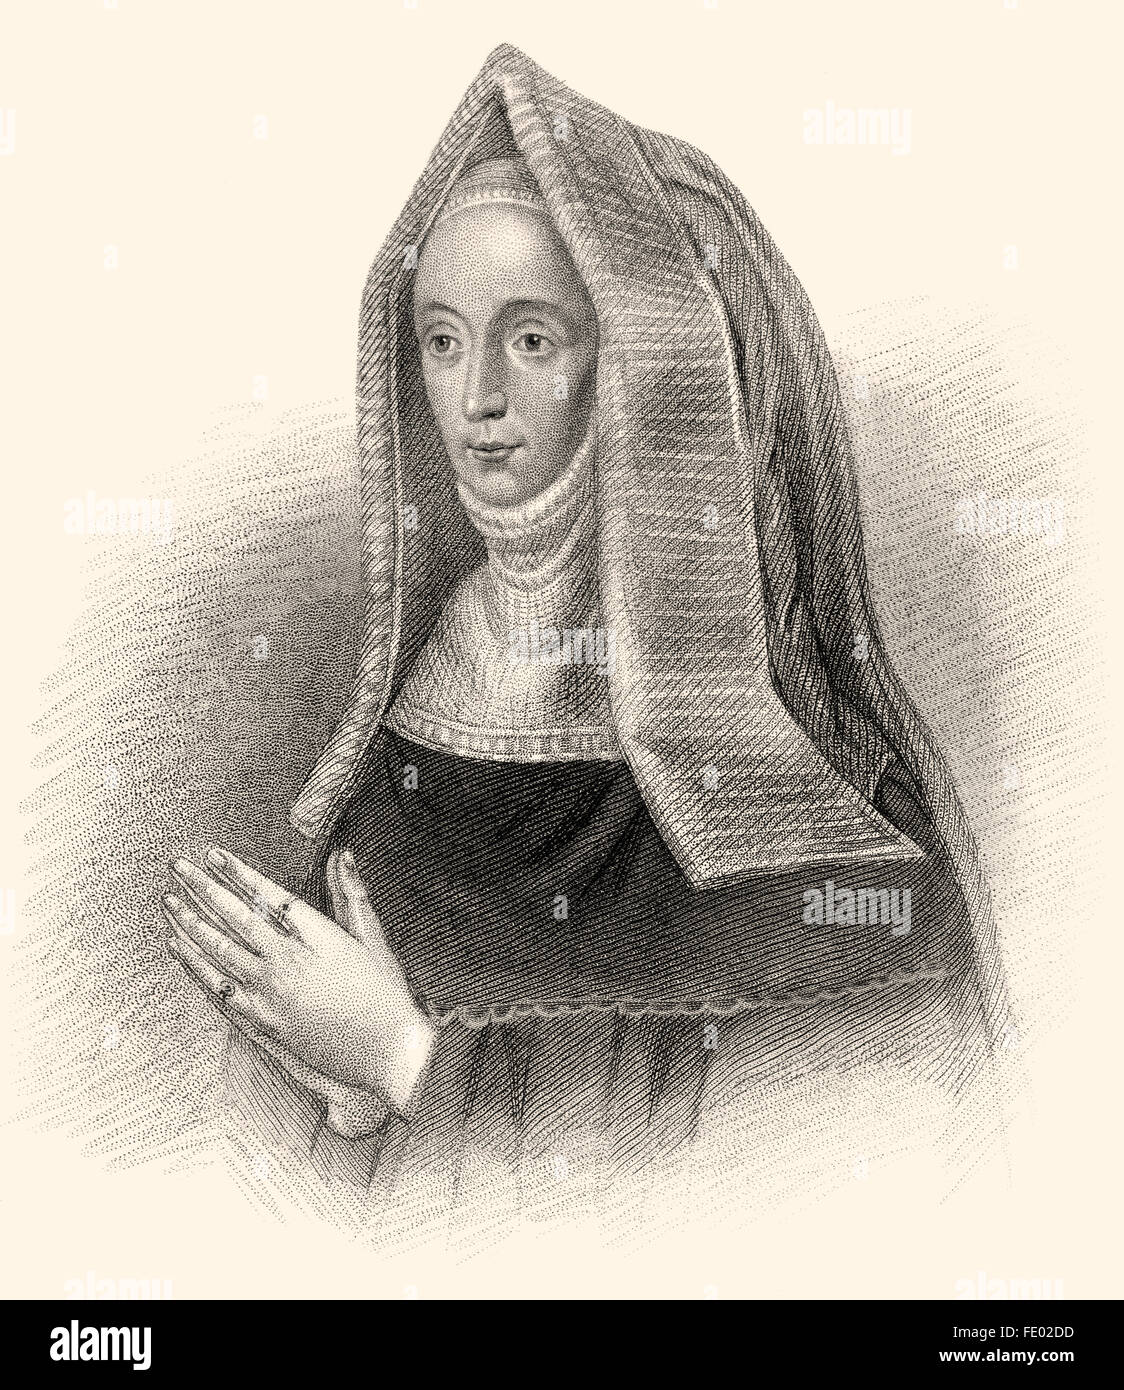 Margaret Beaufort, Countess of Richmond and Derby, 1443-1509, the mother of King Henry VII - Stock Image